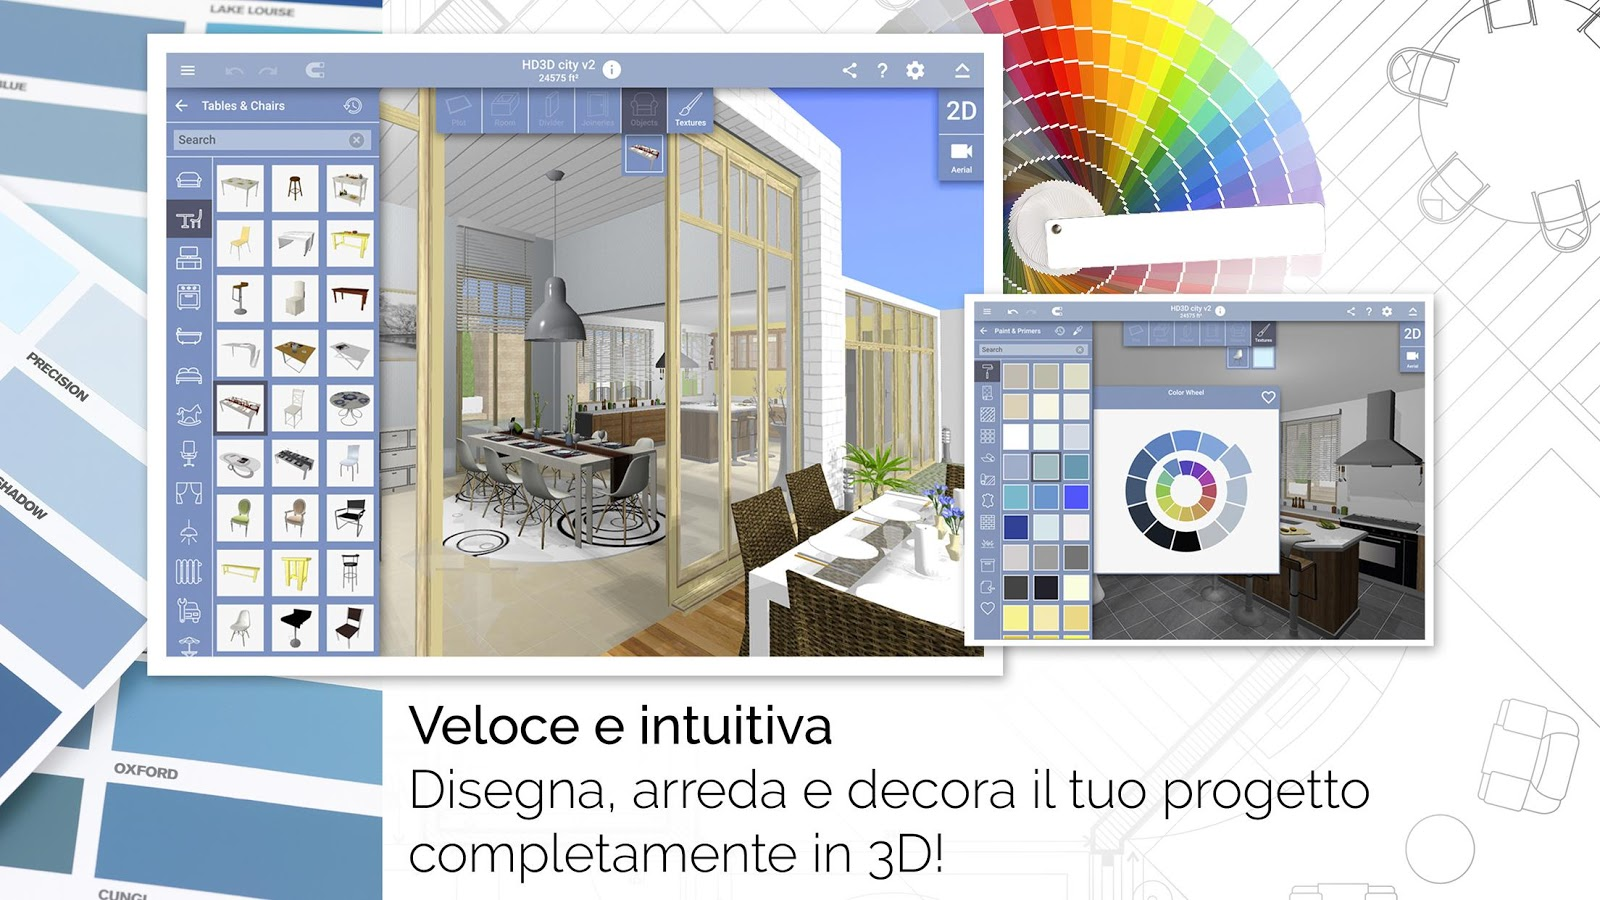 Home design 3d freemium app android su google play for Disegna i tuoi piani di casa gratuitamente